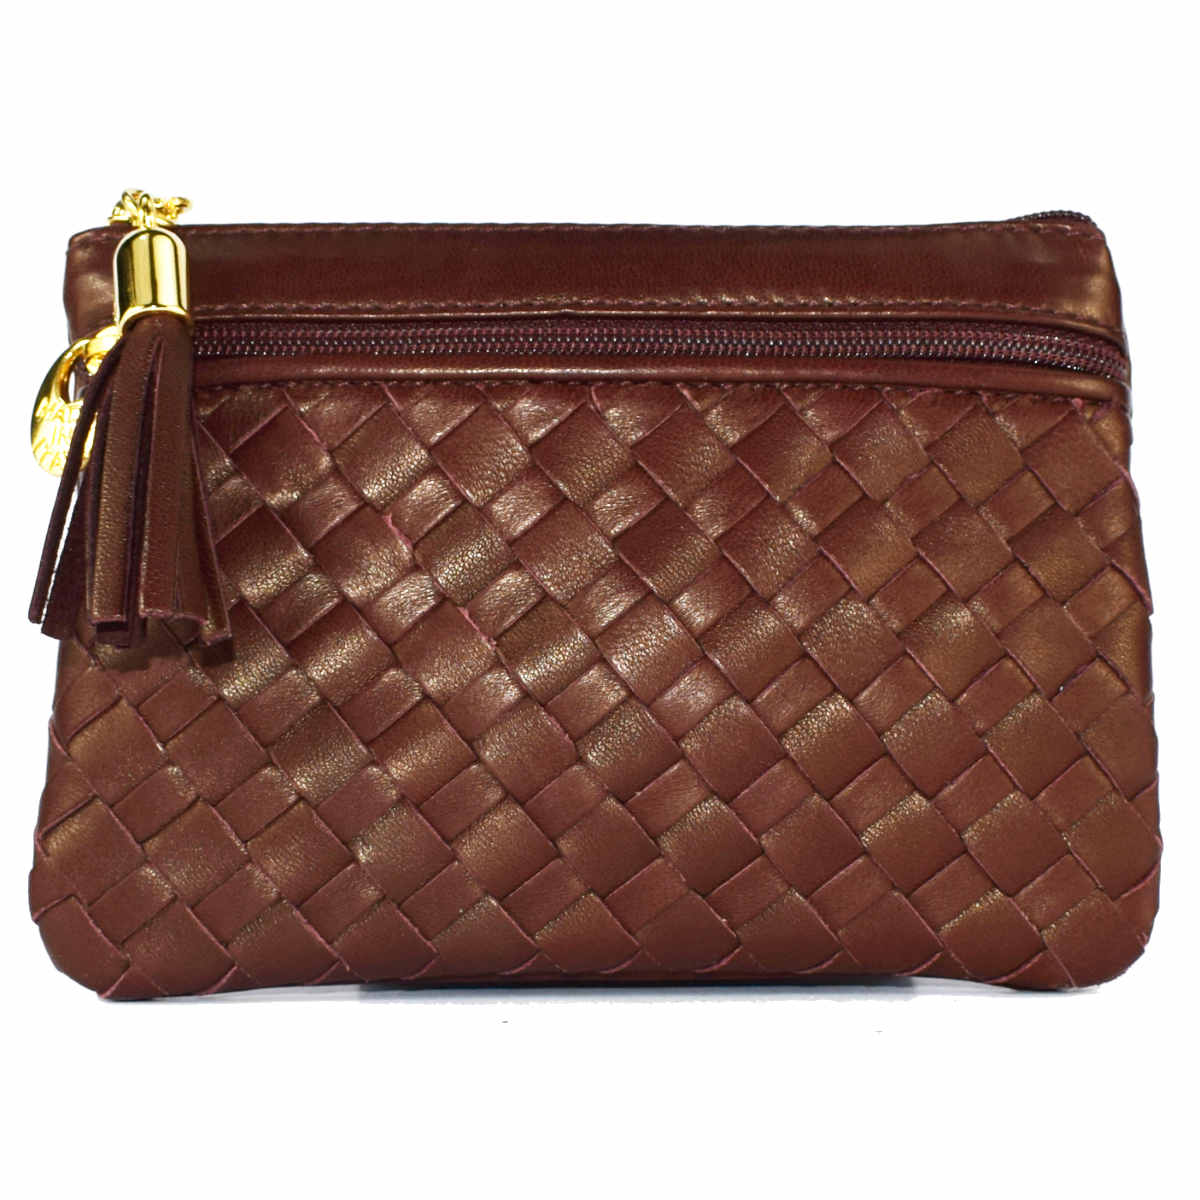 1466 WOVEN BAG IN FRONT by Bottega Fiorentina